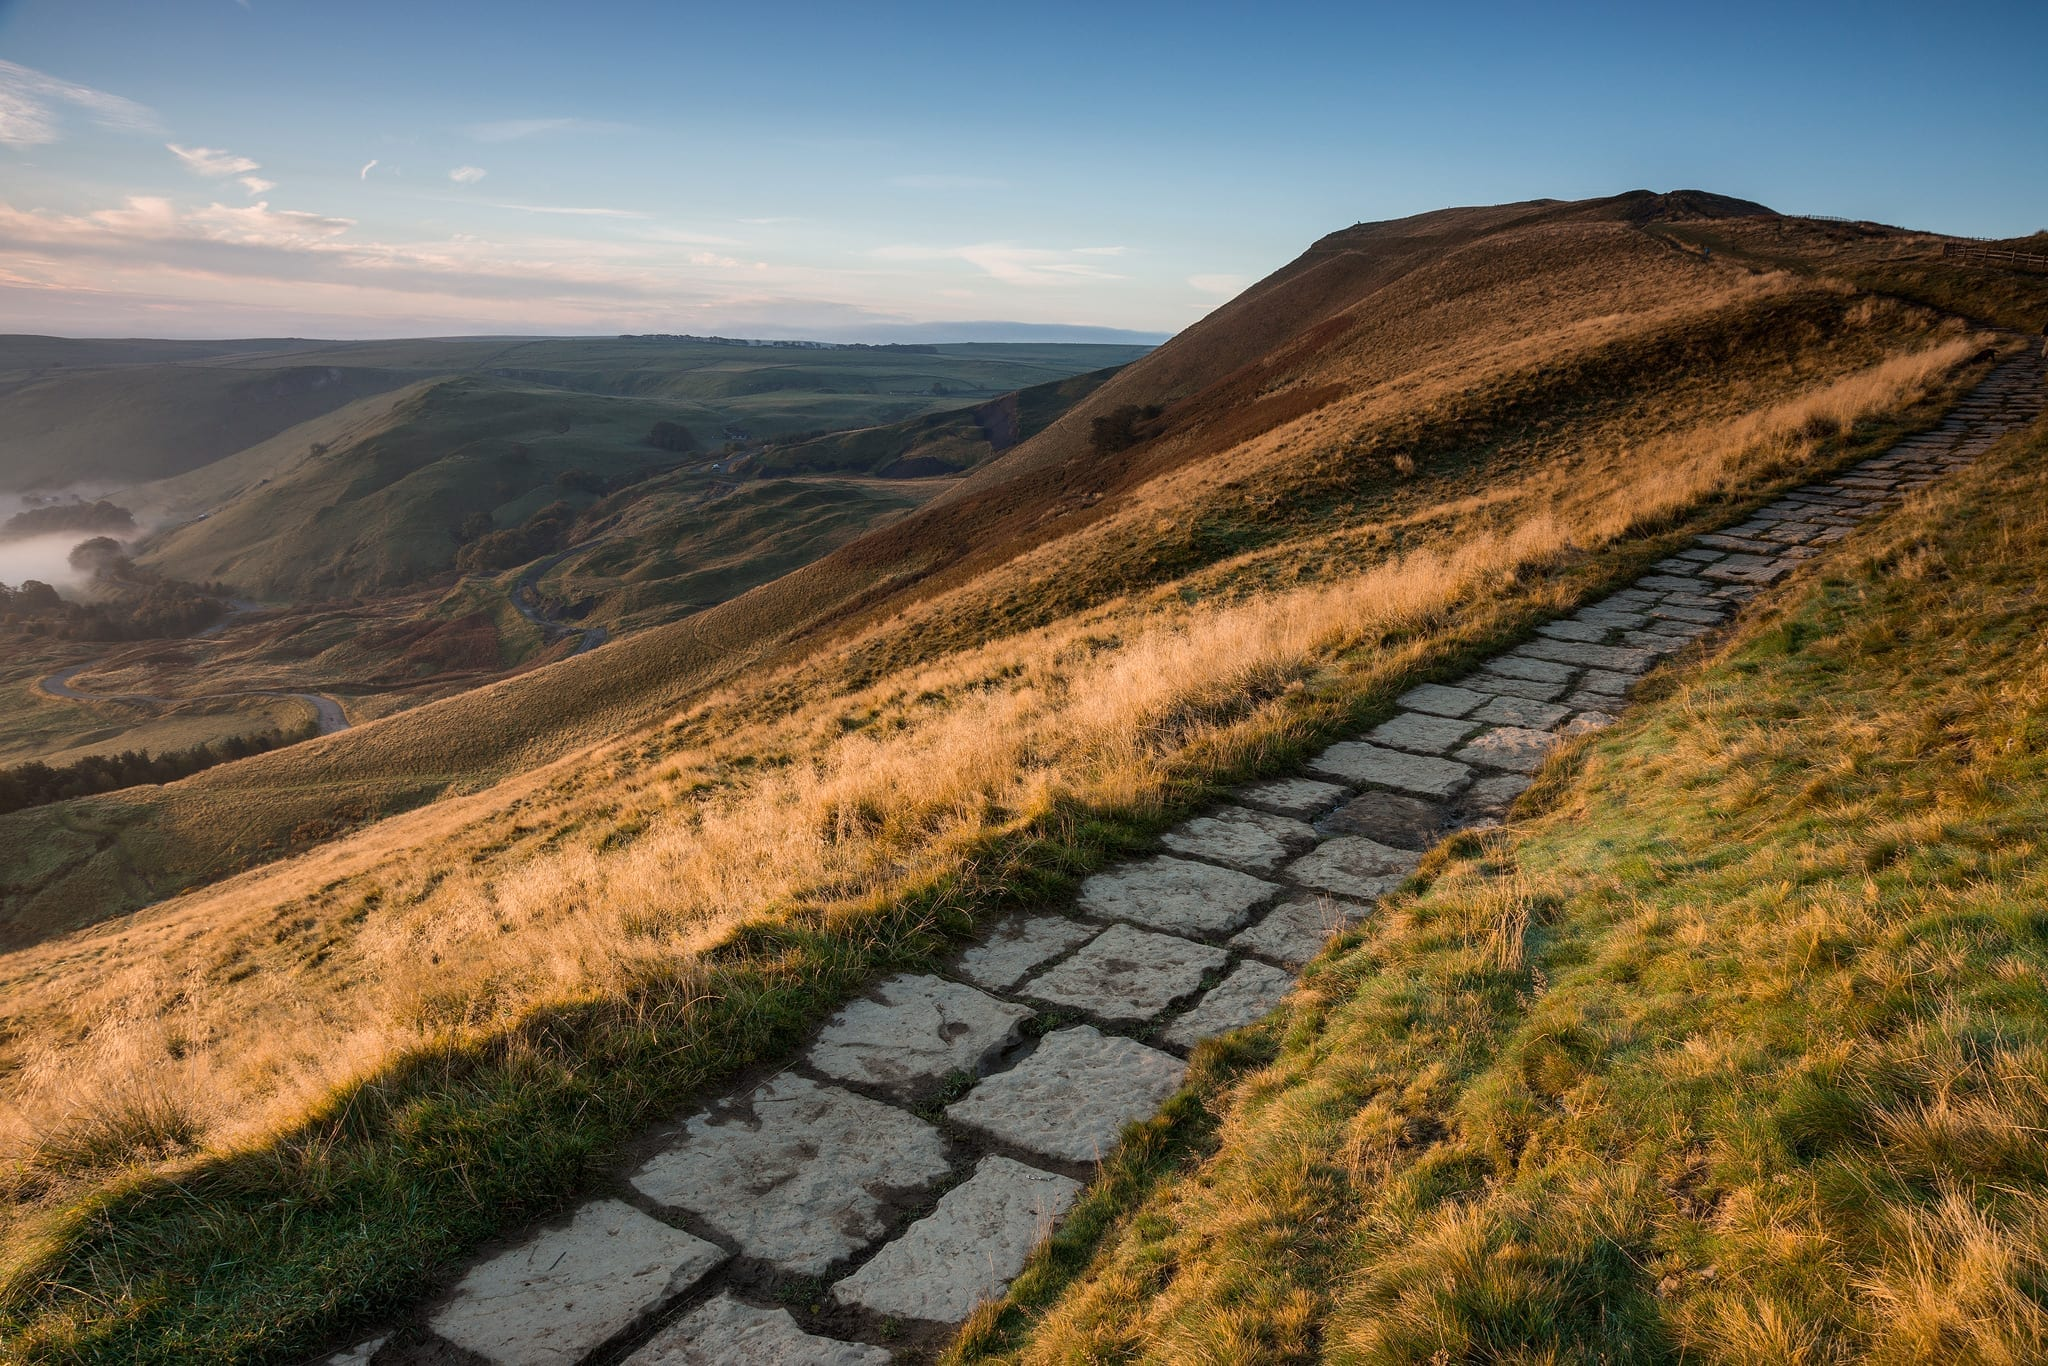 The Mam Tor Gate Alternative View - Looking Back Towards Mam Tor - Mam Tor Photography Location Guide